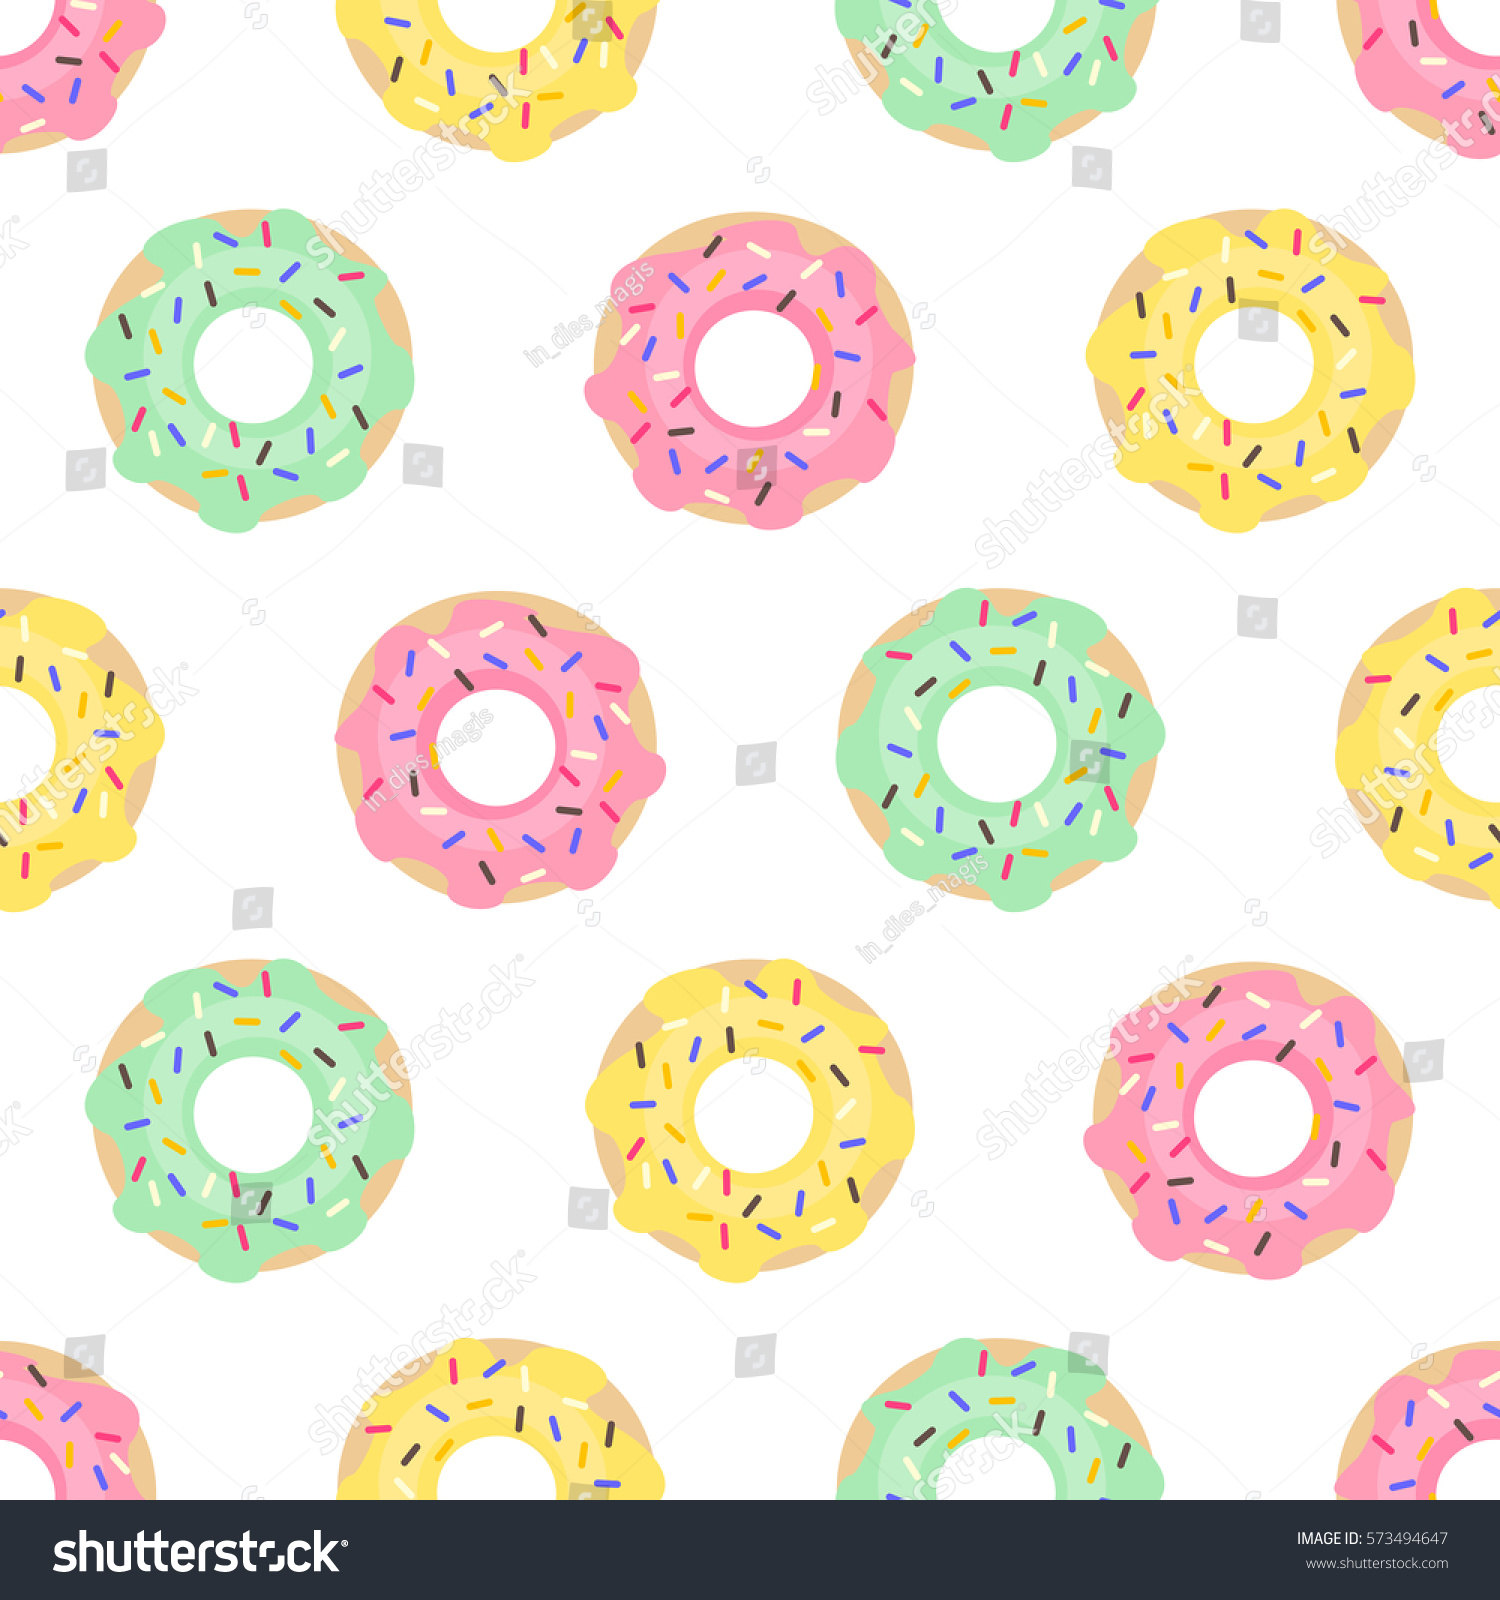 Donuts Seamless Pattern On White Background 573494647